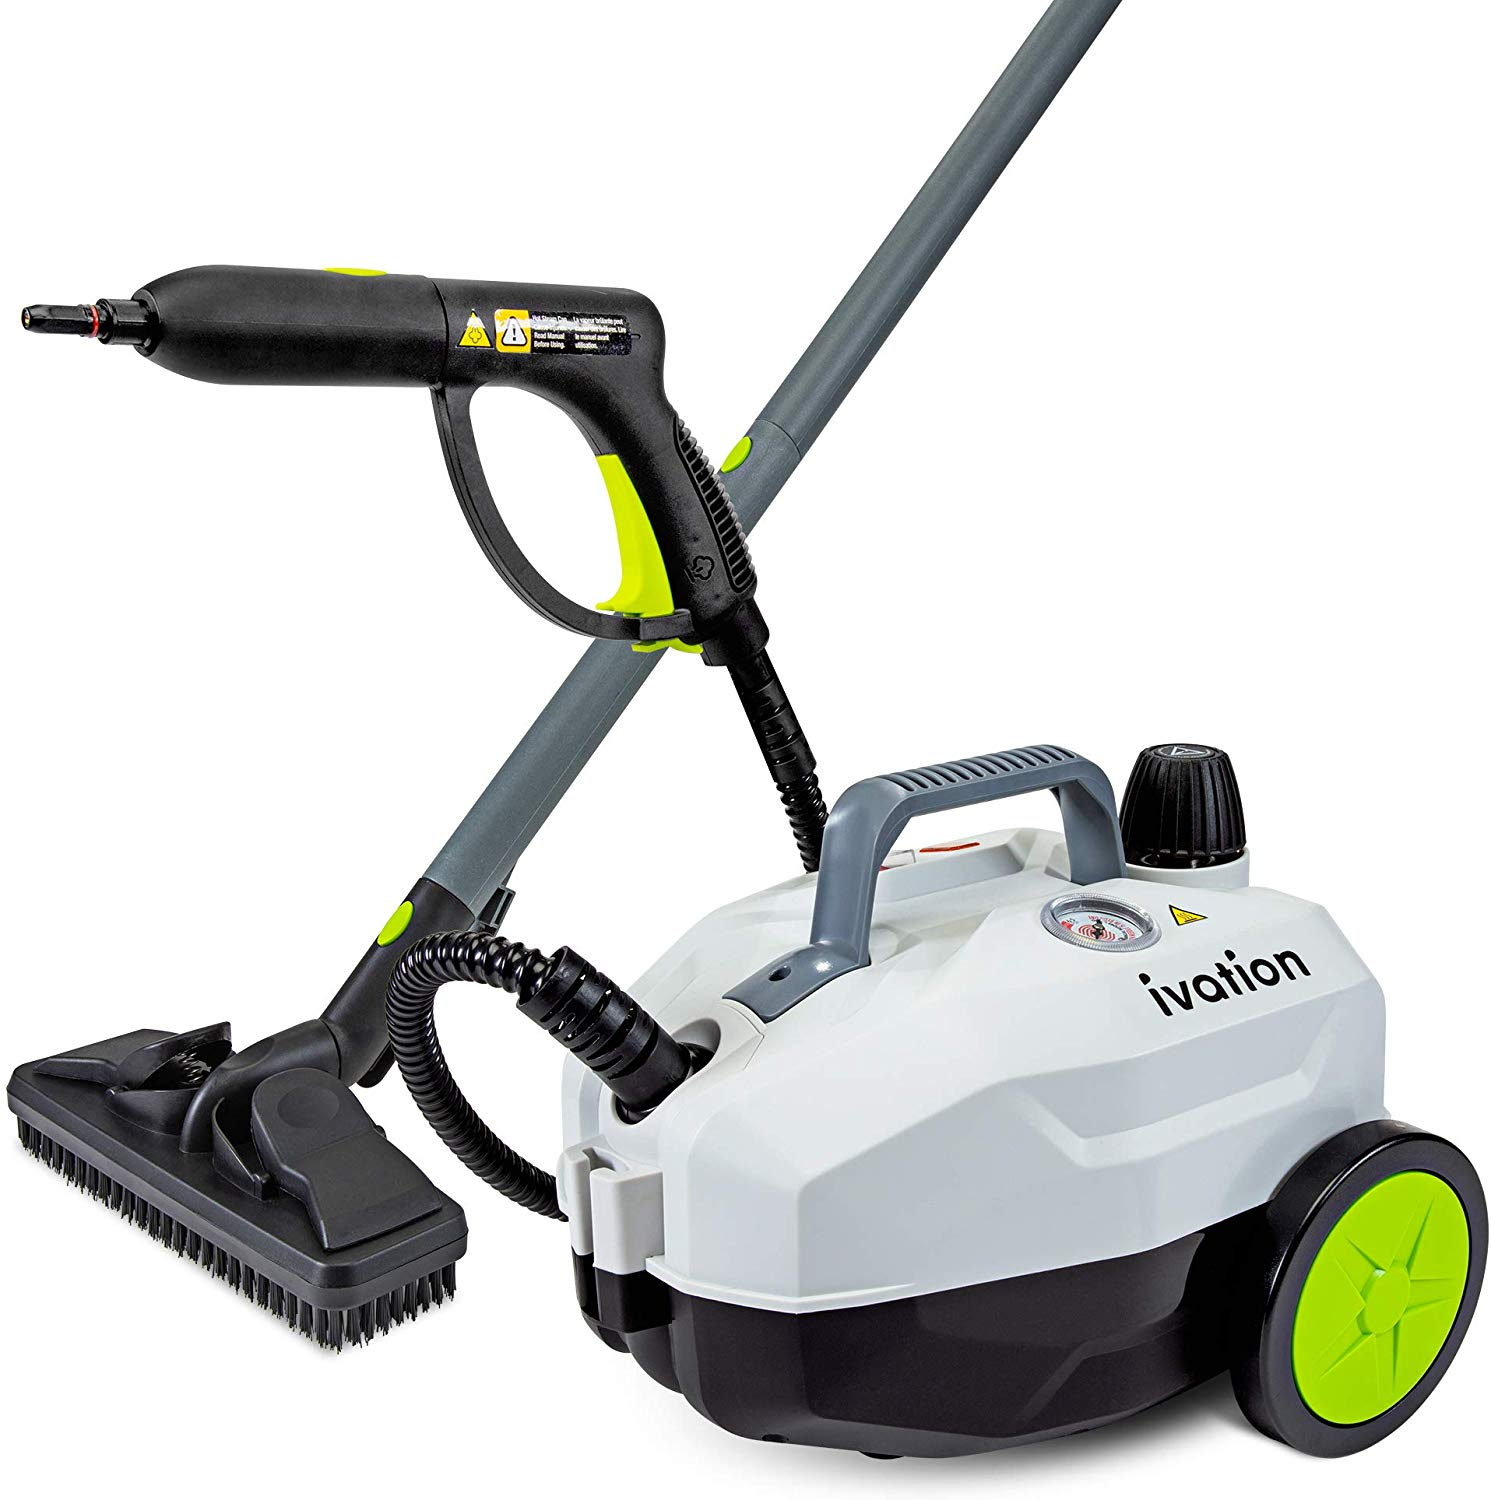 Ivation 1800W Canister Cleaner